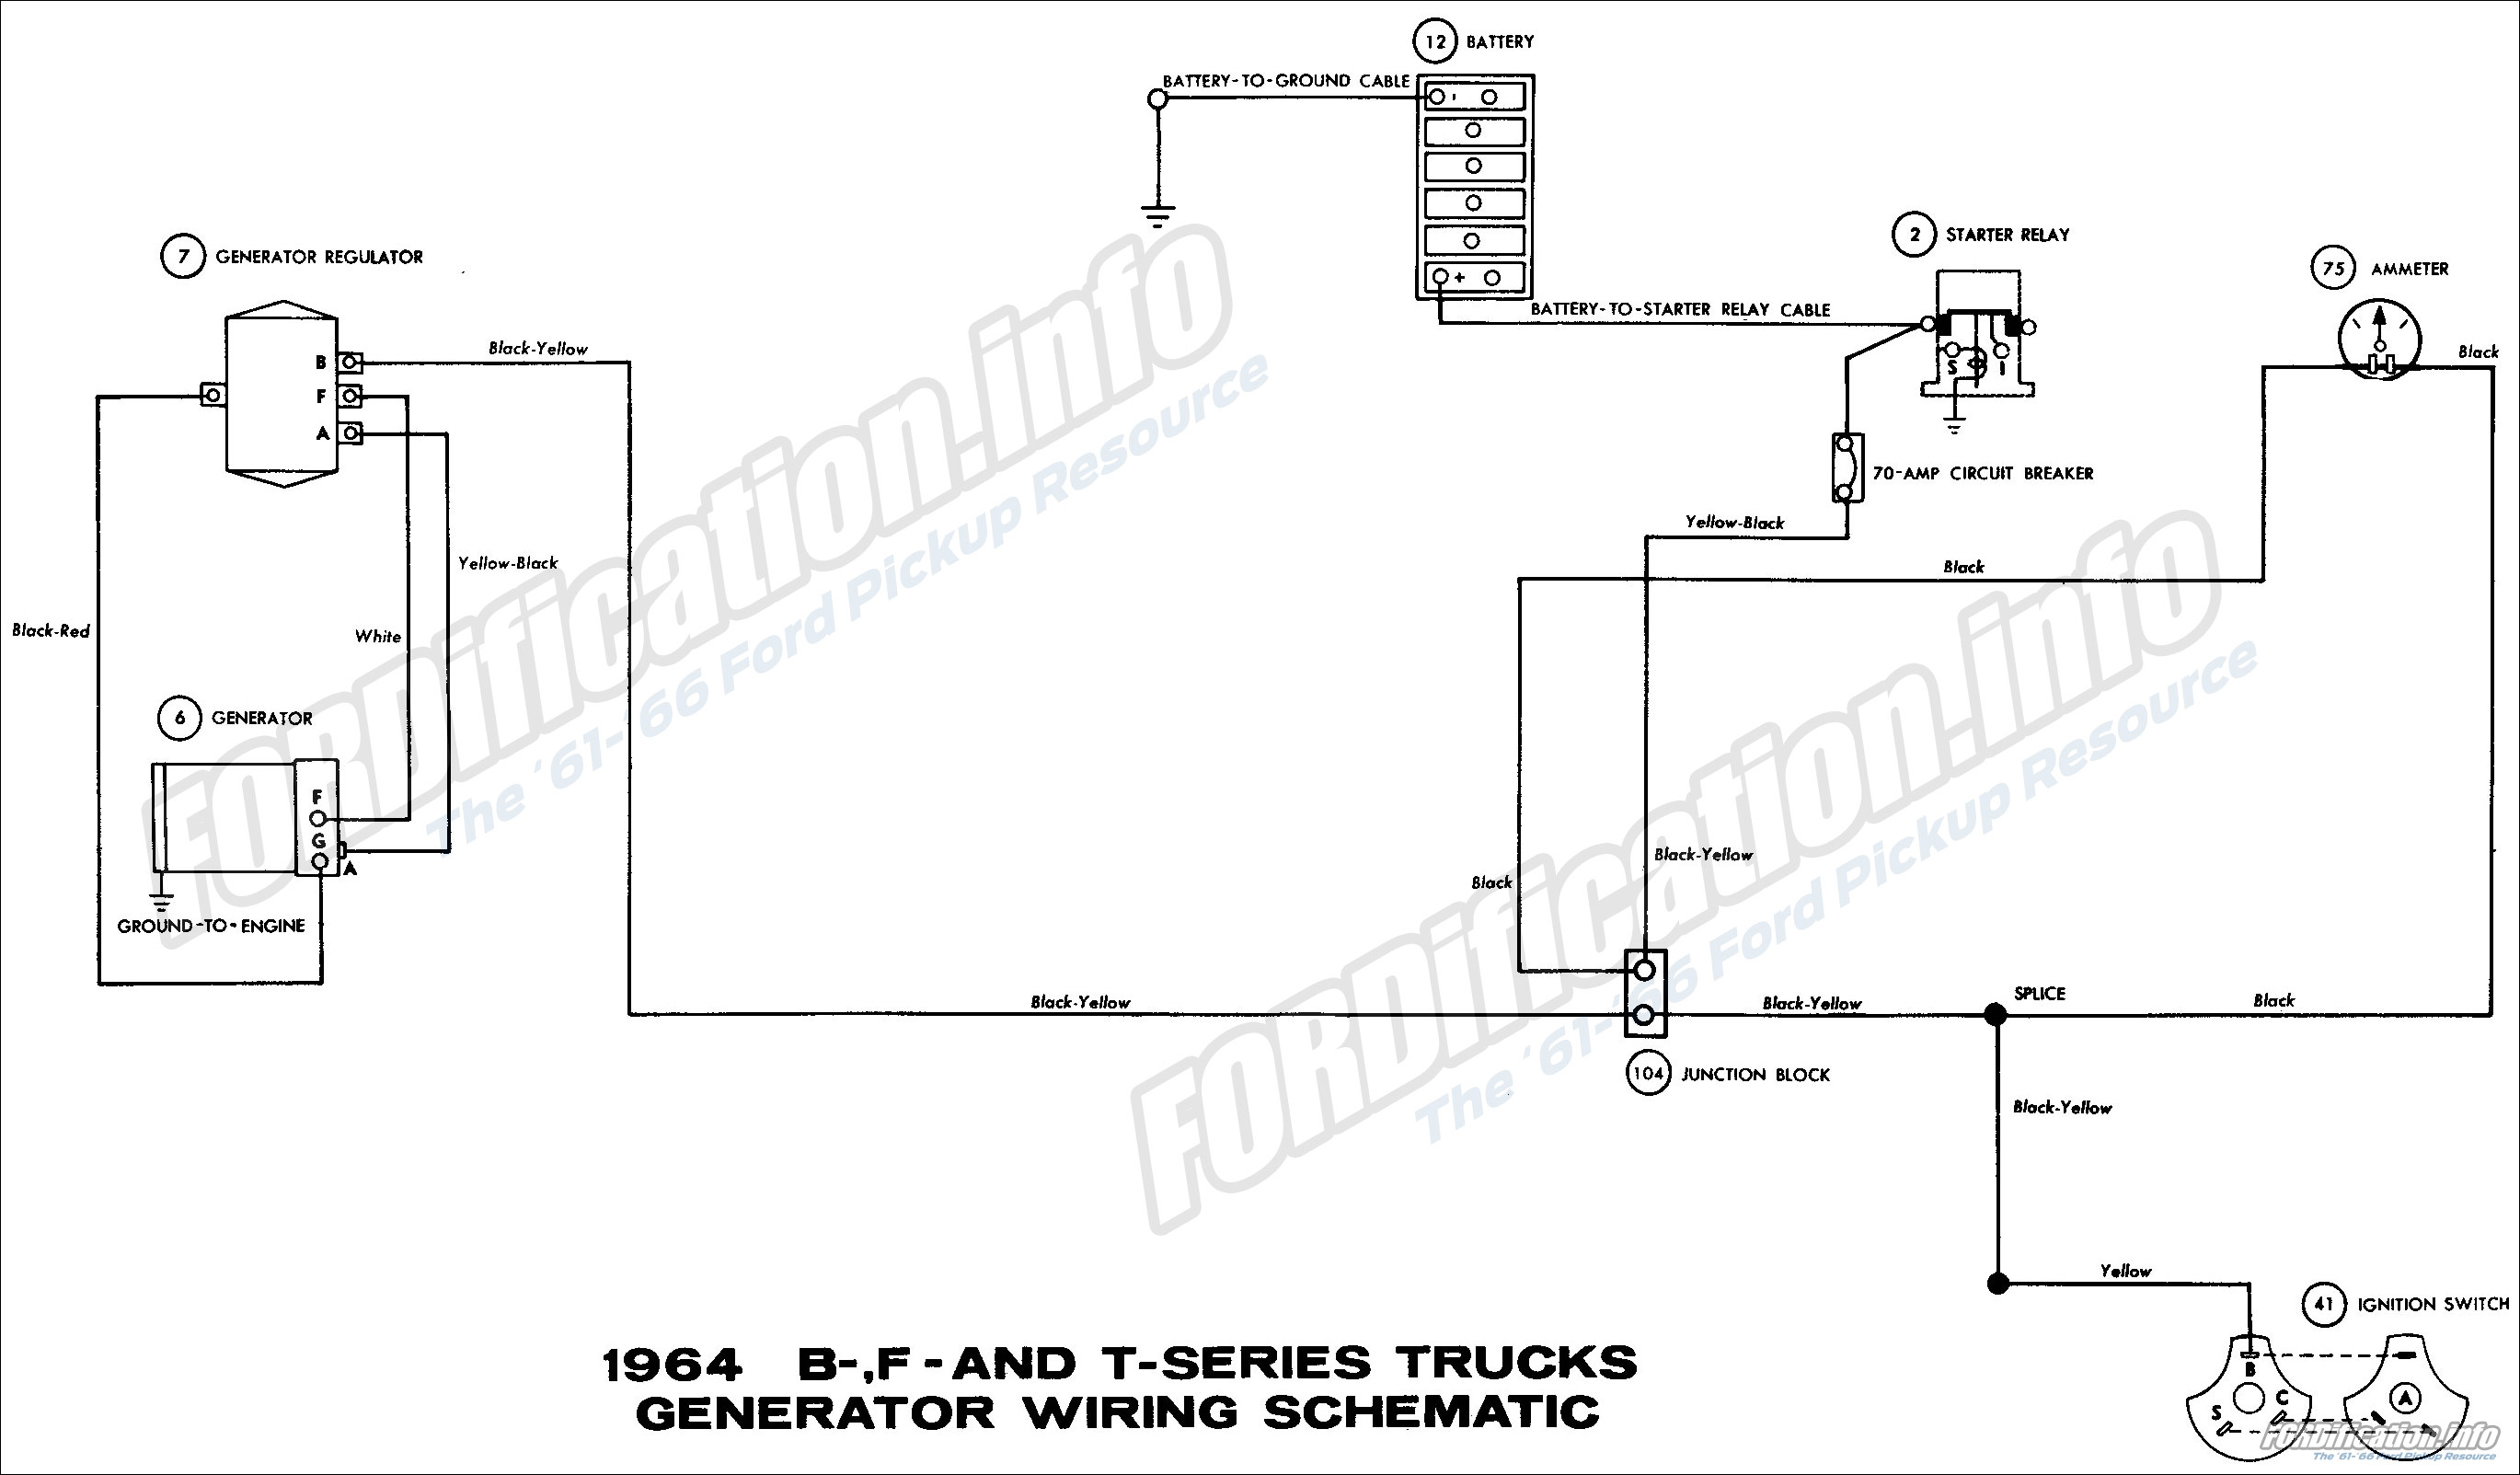 1964_07 1964 ford truck wiring diagrams fordification info the '61 '66 1965 ford truck wiring diagram at nearapp.co